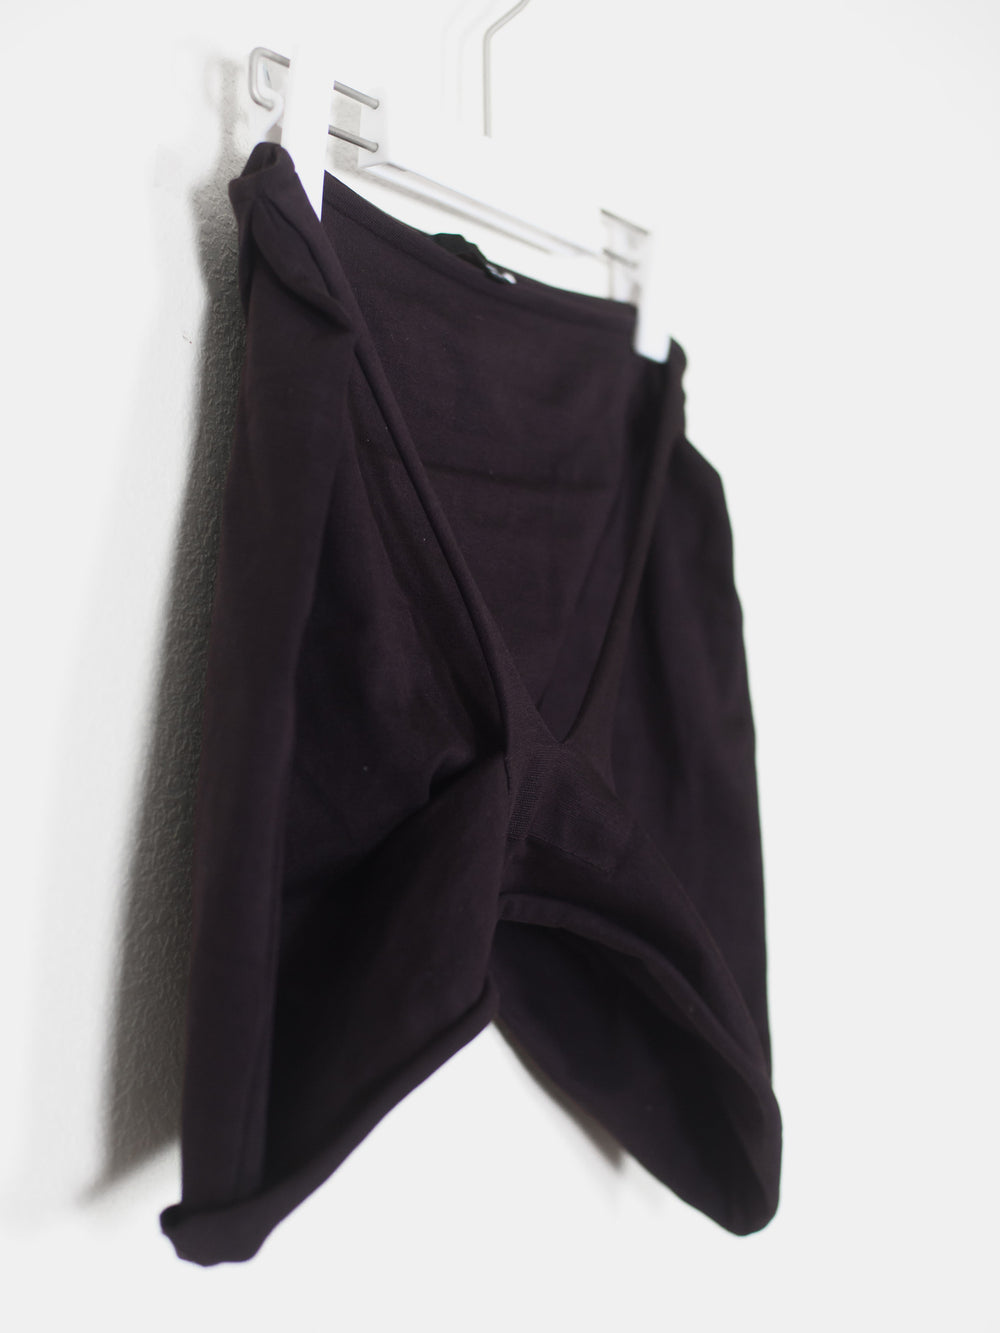 Helmut Lang SS04 Dragonfly Raw Strap Mini Skirt